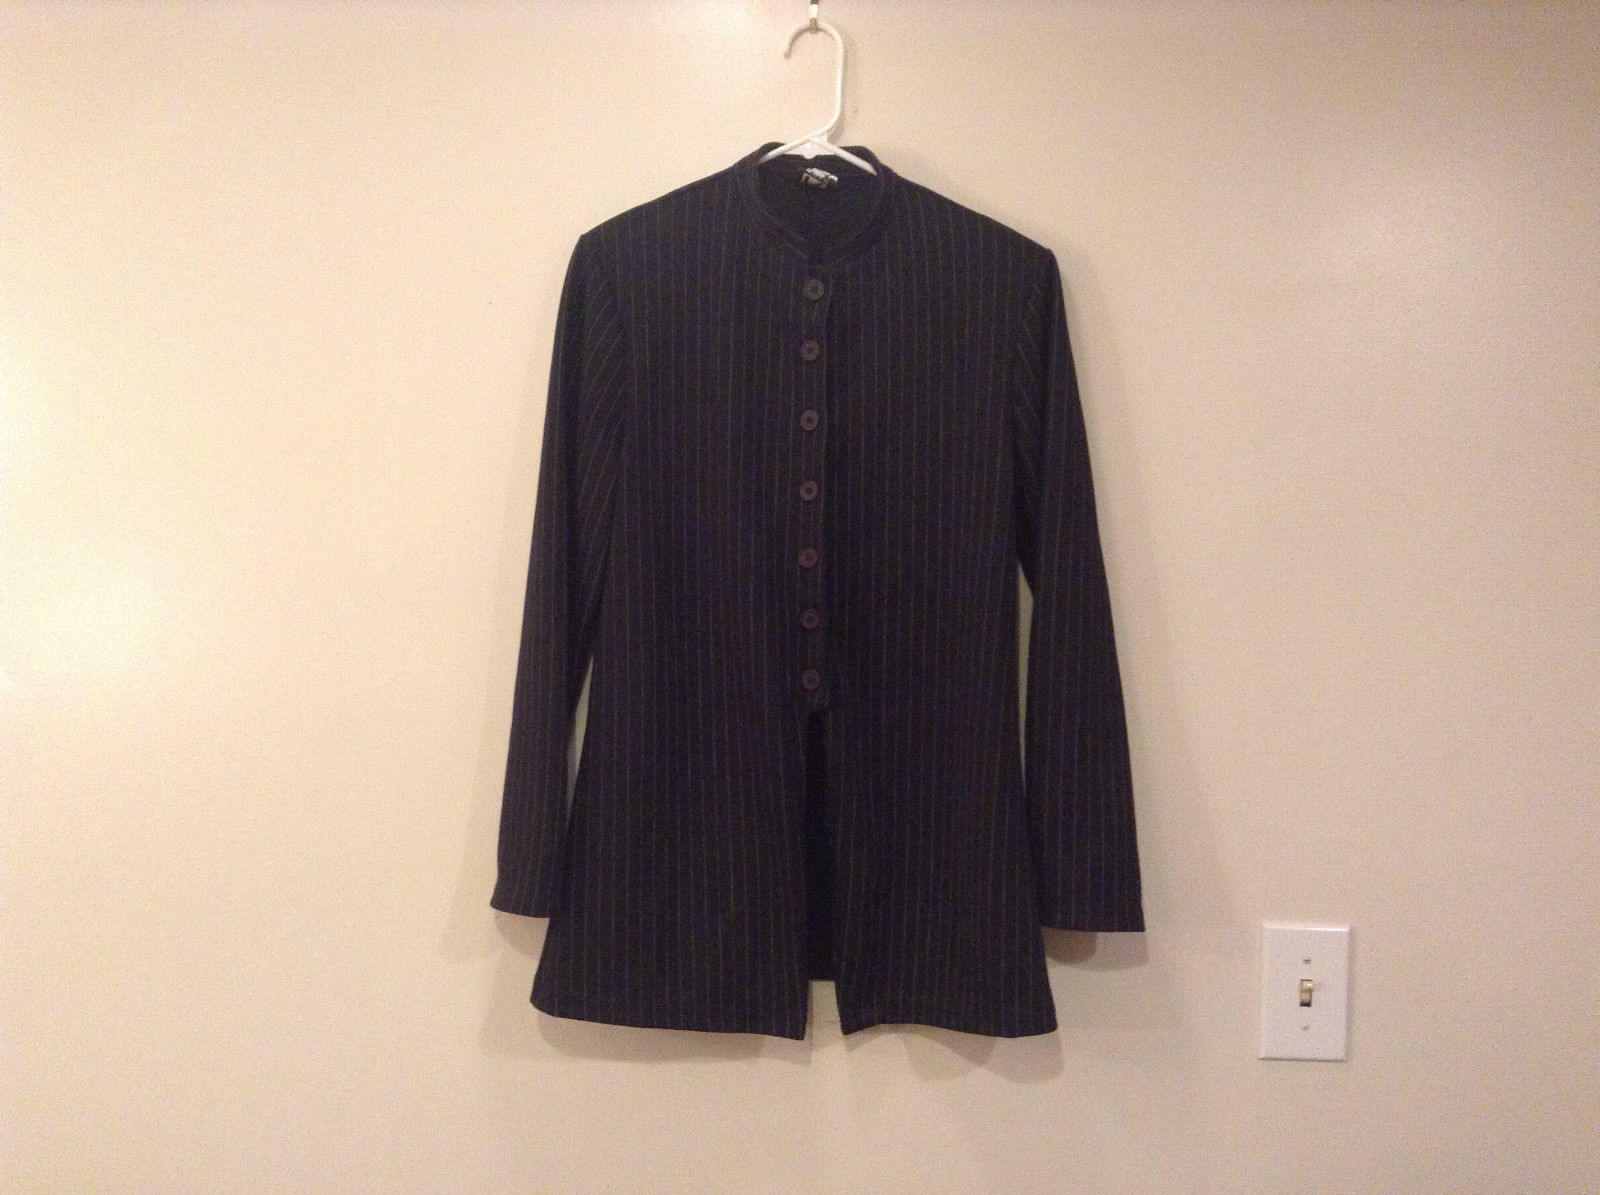 Black with White Stripes R Wear Jacket Size 11 Unusual Cut Stand Collar